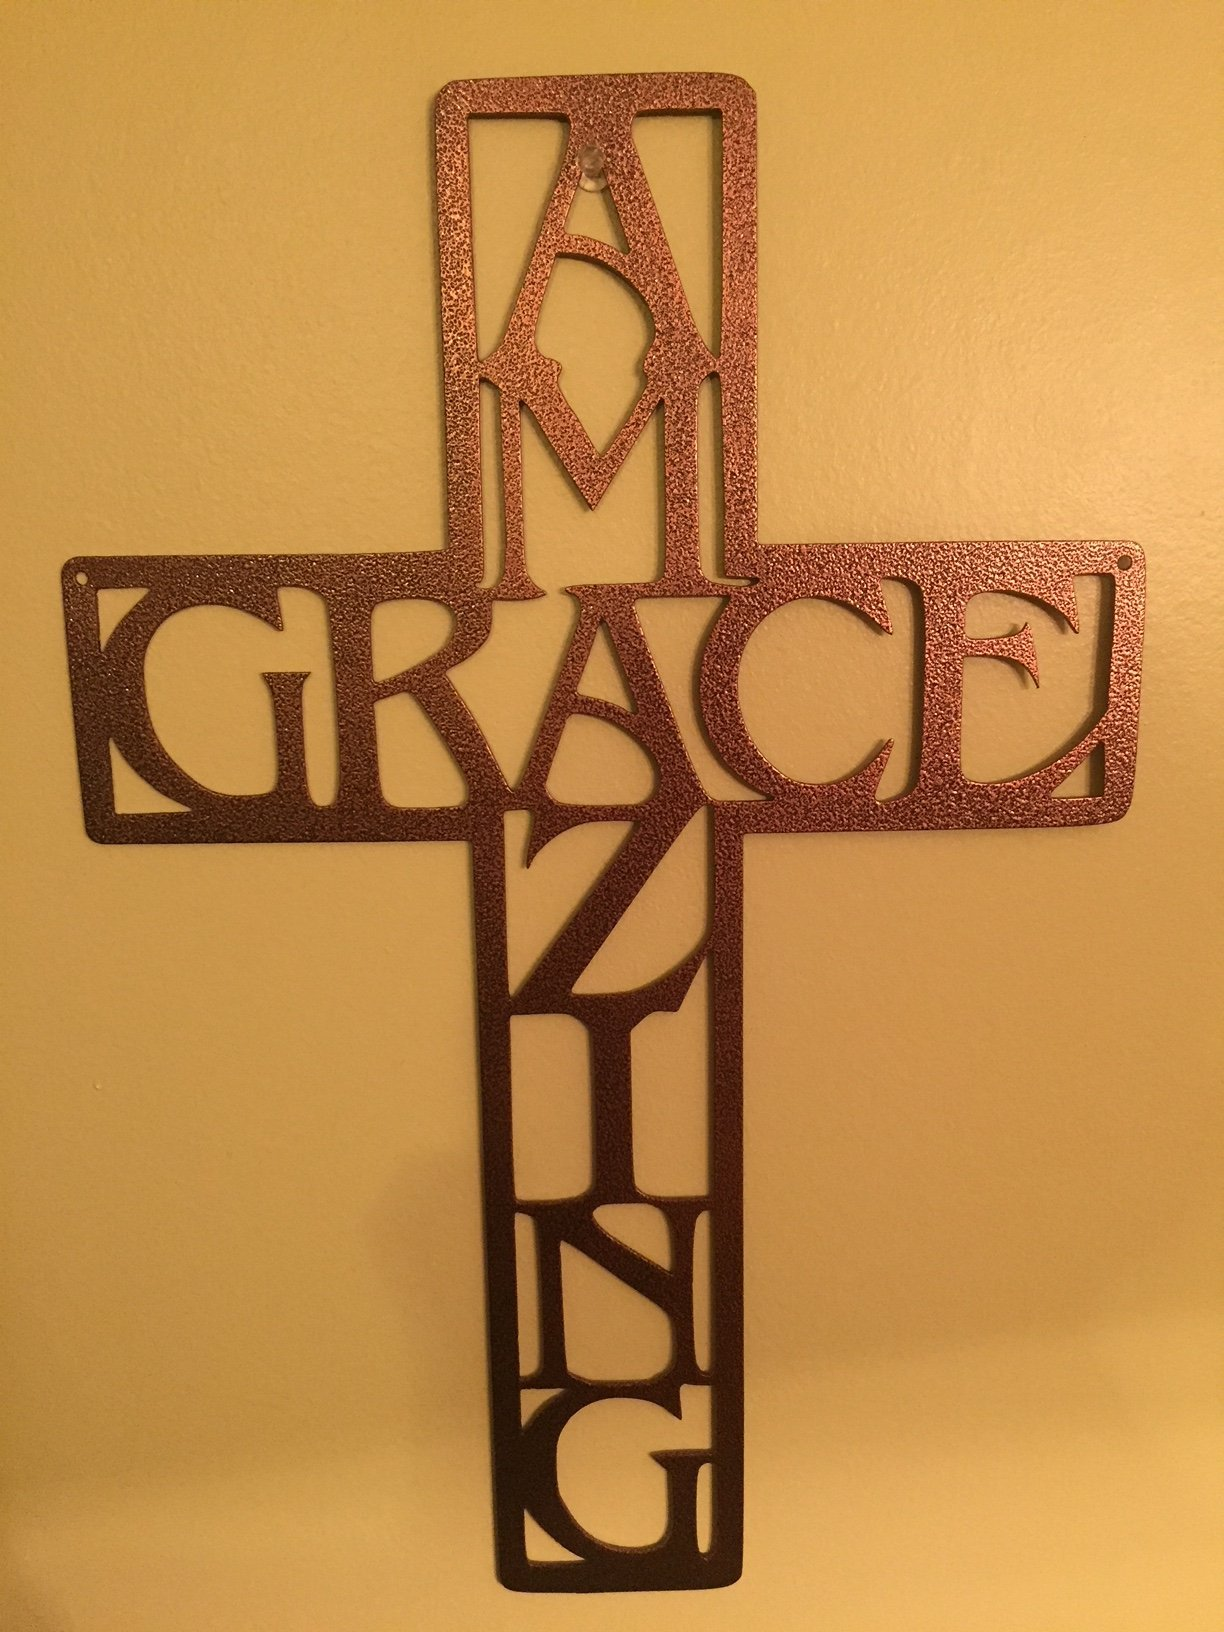 Amazing Grace Cross Metal Arc Steel Wall Art H H Decor And More